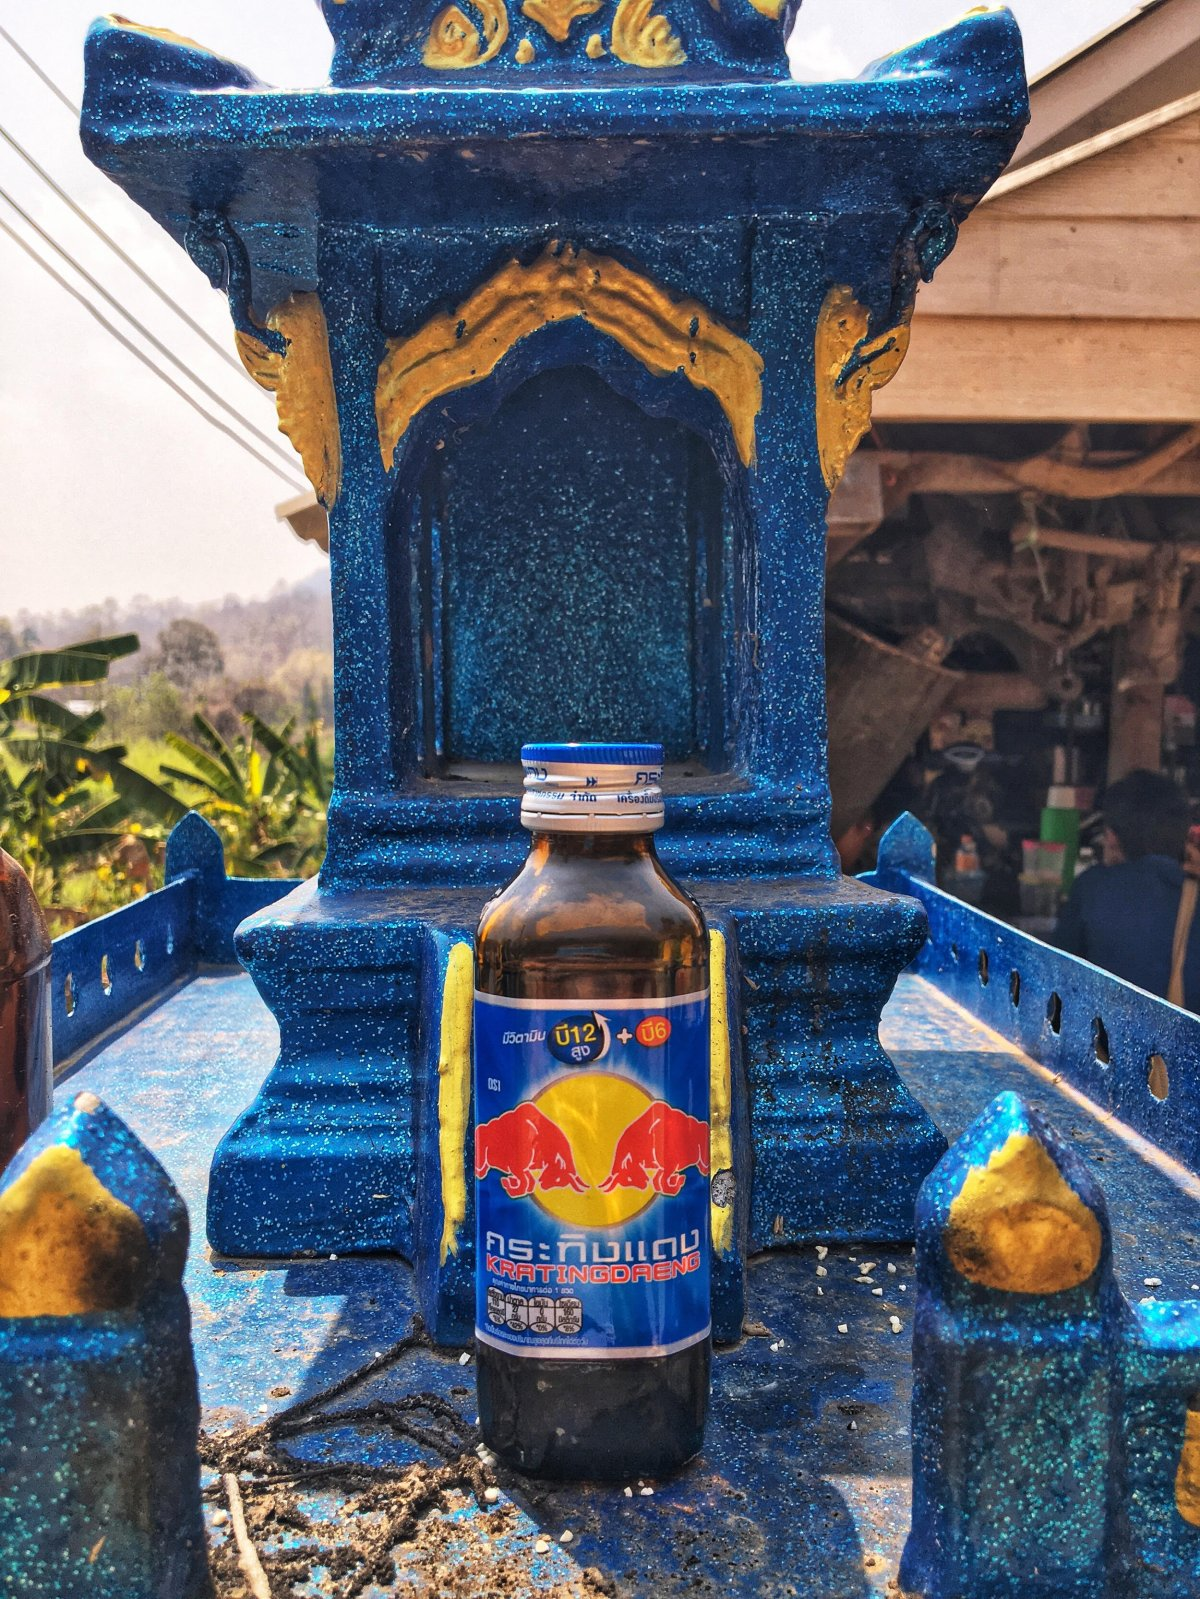 Red Bull, otherwise known as Krating Daeng, was originally invented in Thailand